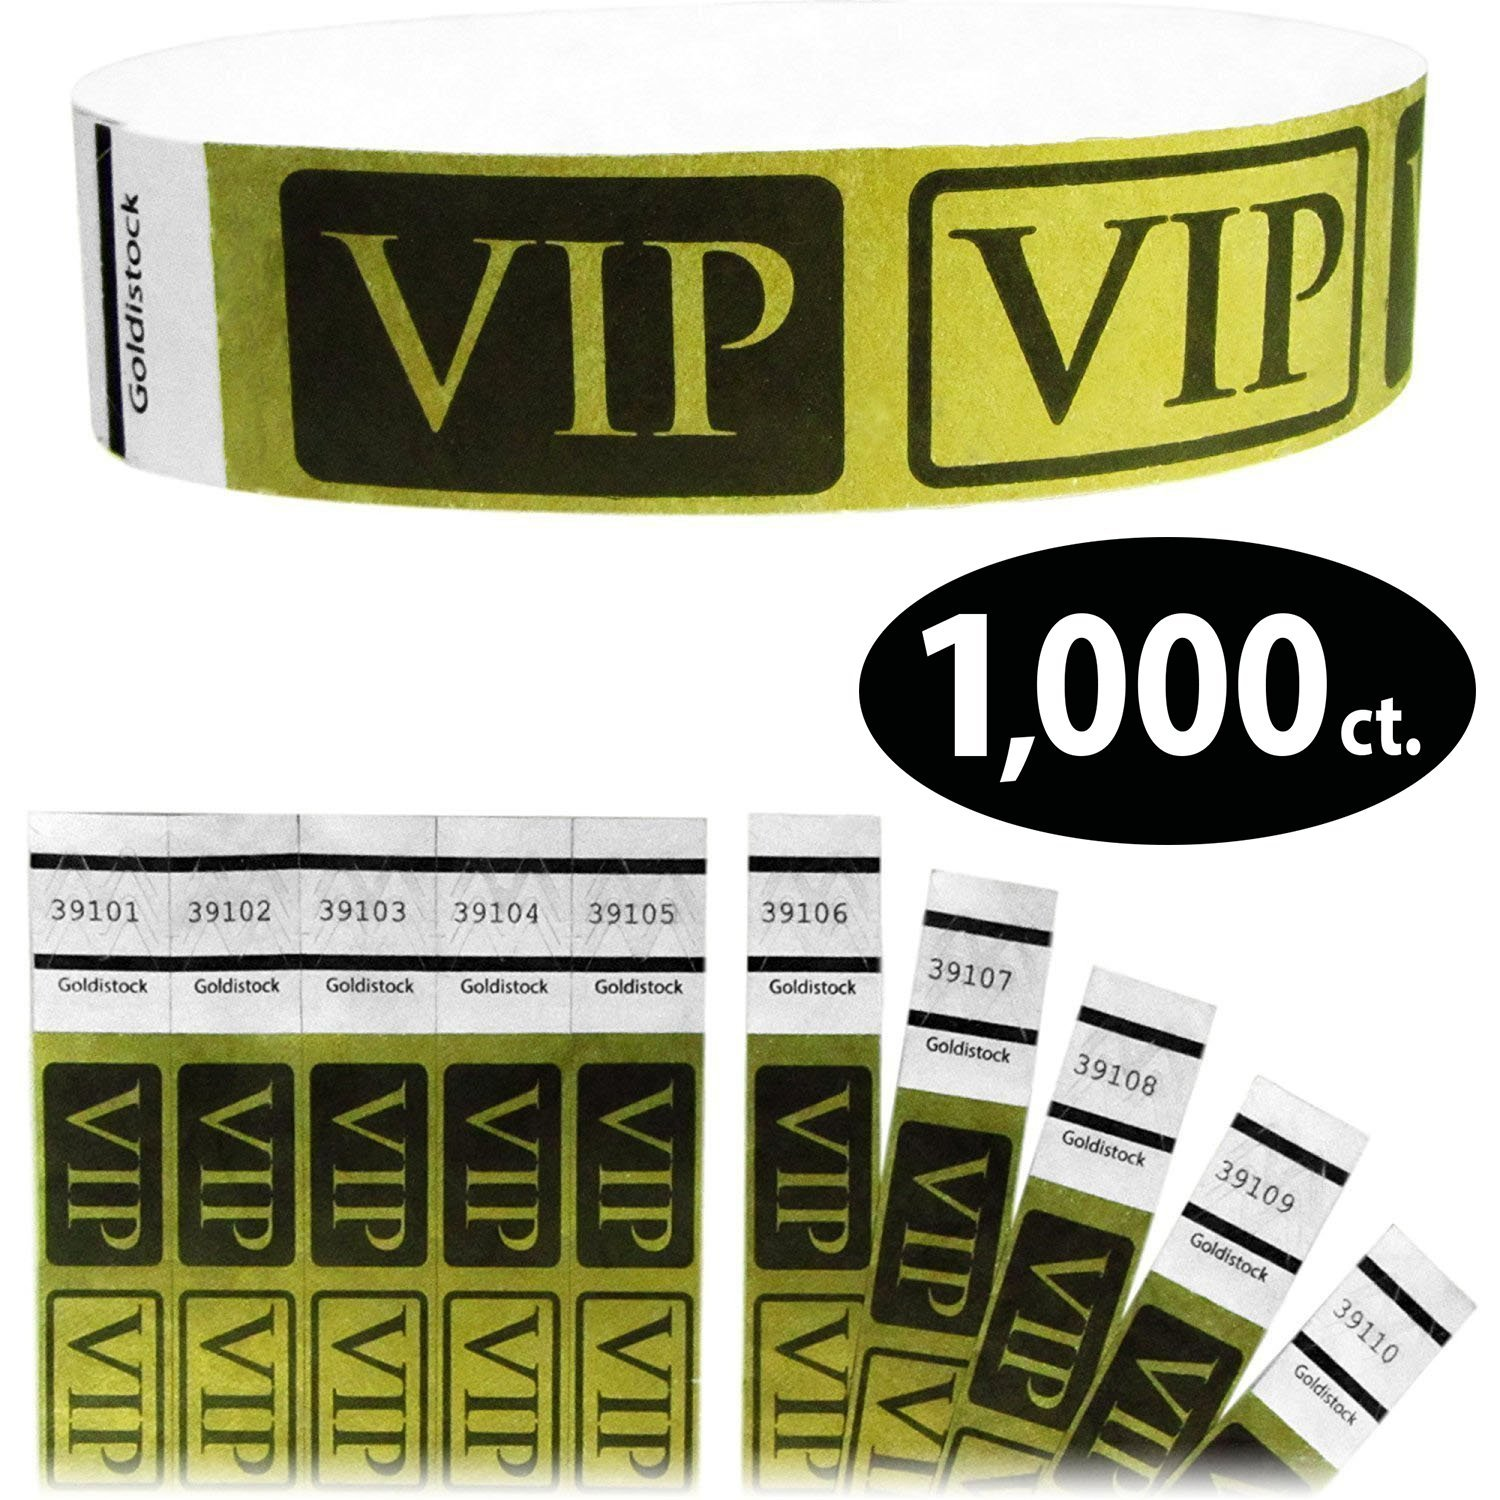 Tyvek Wristbands - Goldistock VIP Deluxe Metallic Gold 1,000 Count - ¾'' Arm Bands - Paper-Like Party Armbands - Heavier Tyvek Wrist Bands = Upgrading Your Event by Goldistock